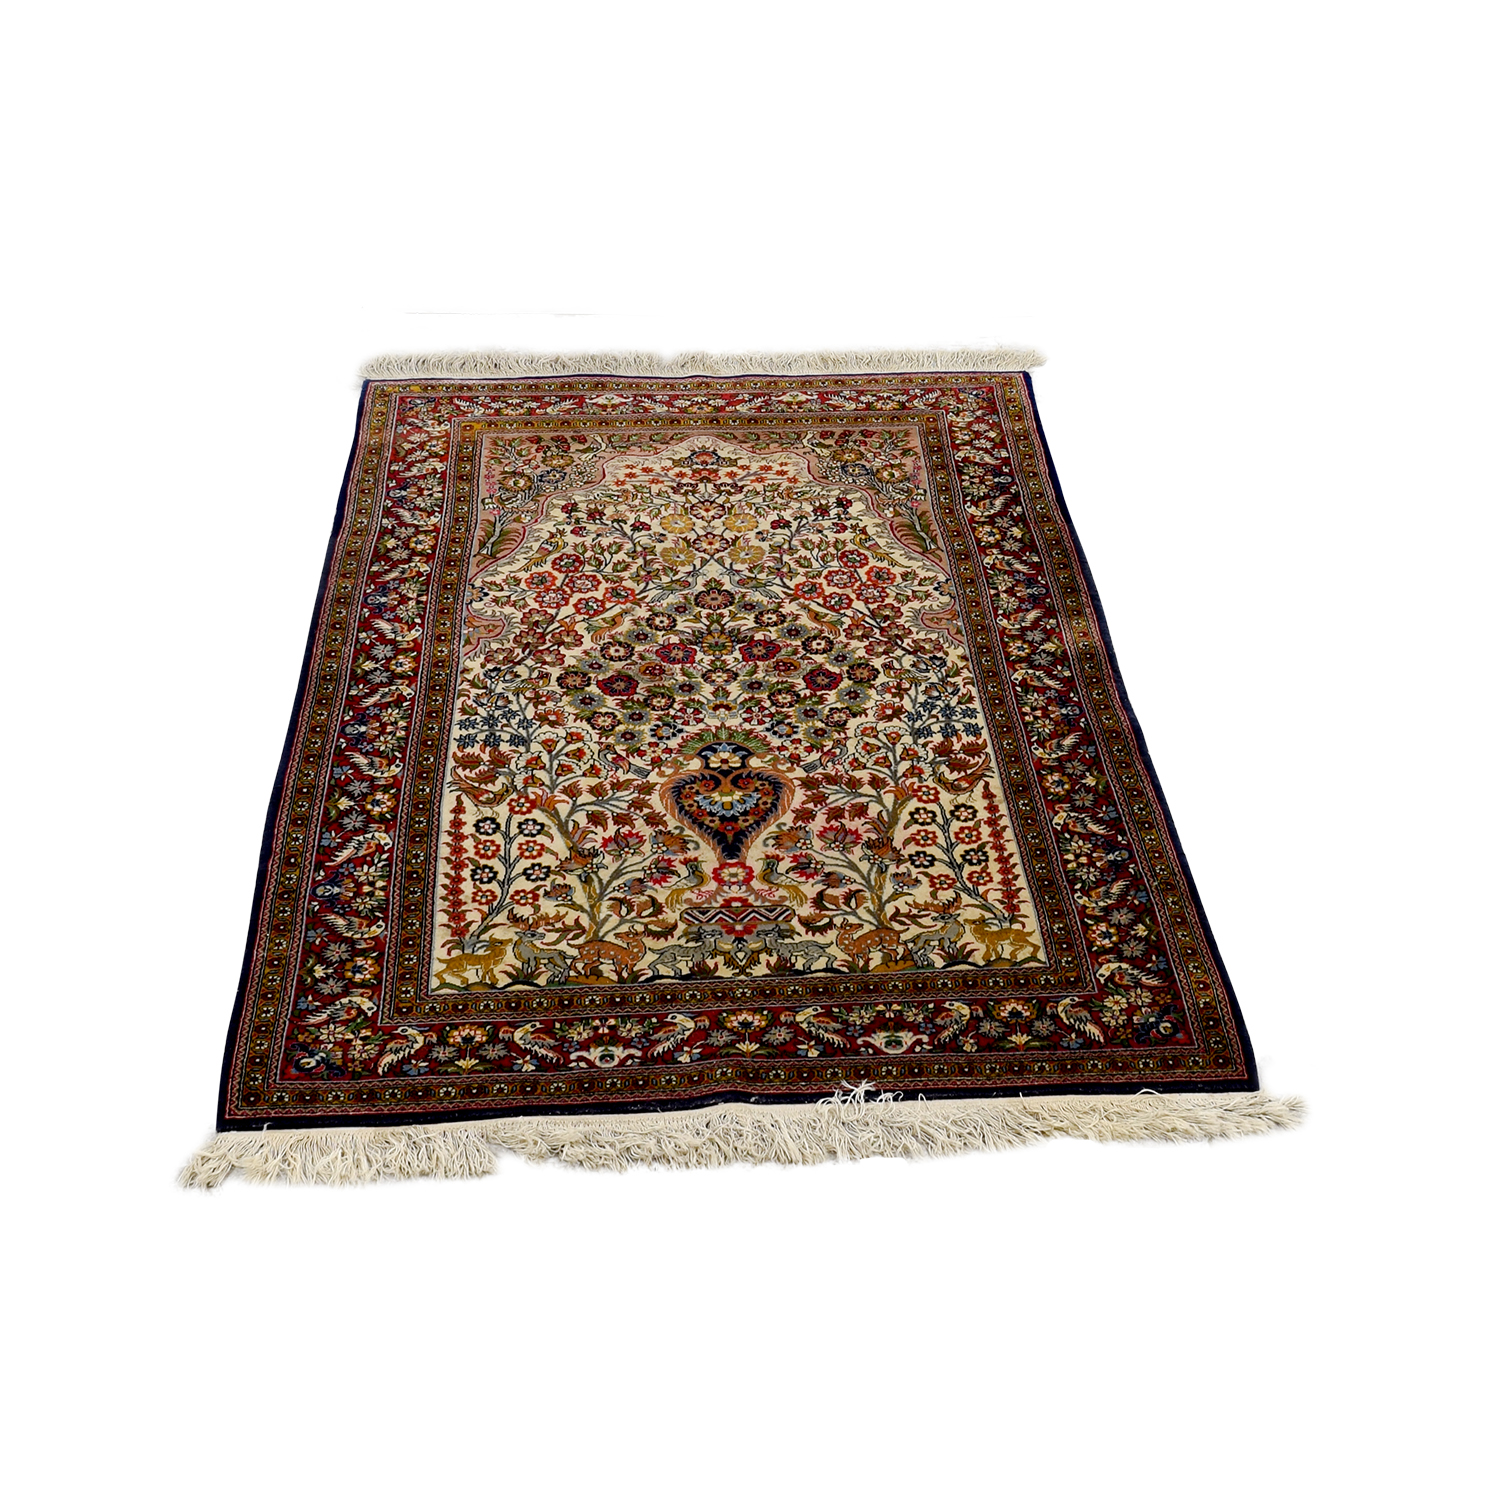 buy ABC Carpet and Home ABC Carpet & Home Persian Red Rug online